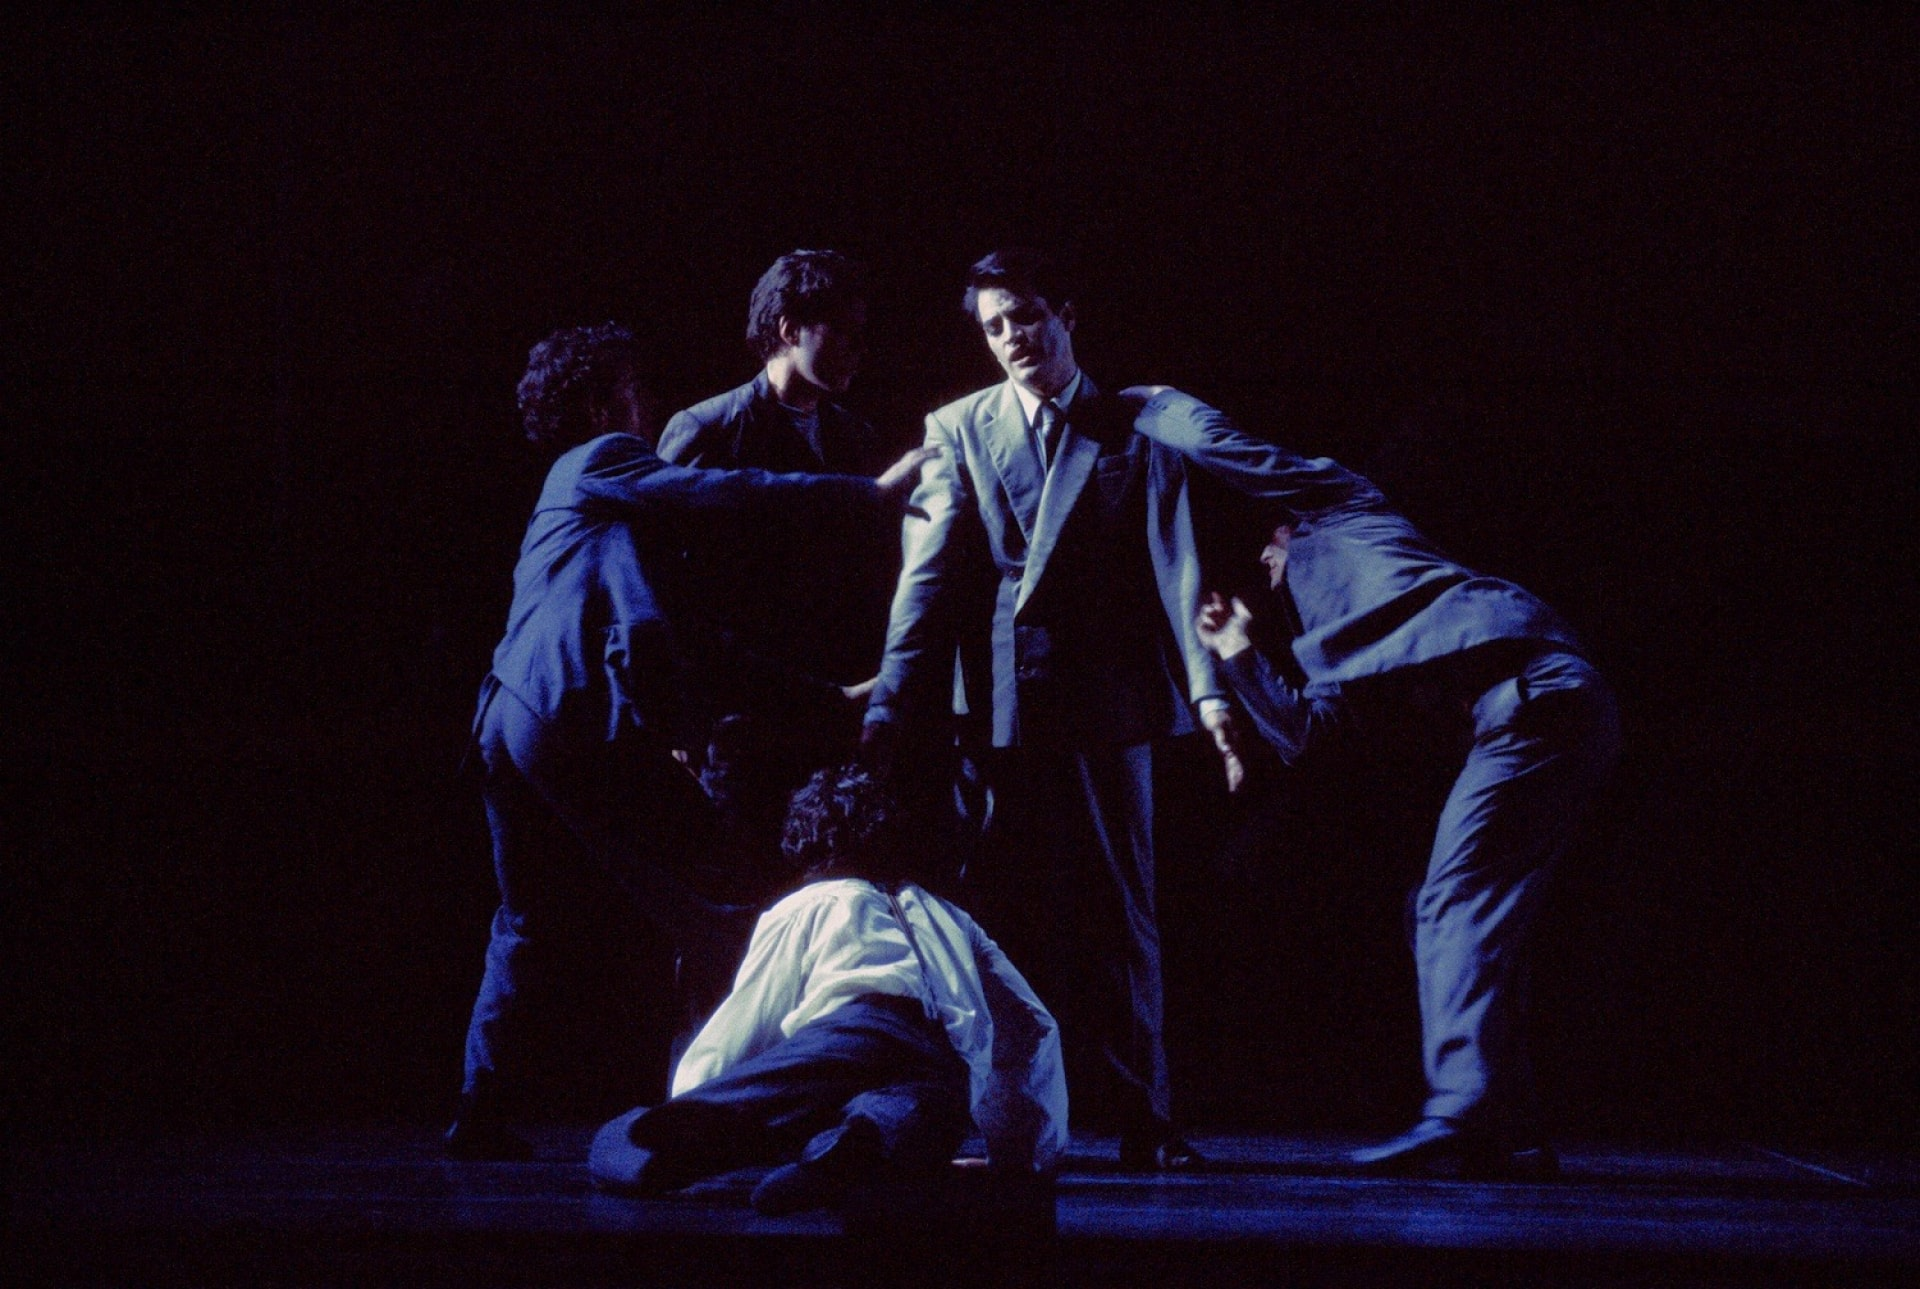 Dancer in white shirt looks up from floor to four dancers in double-breasted suits.